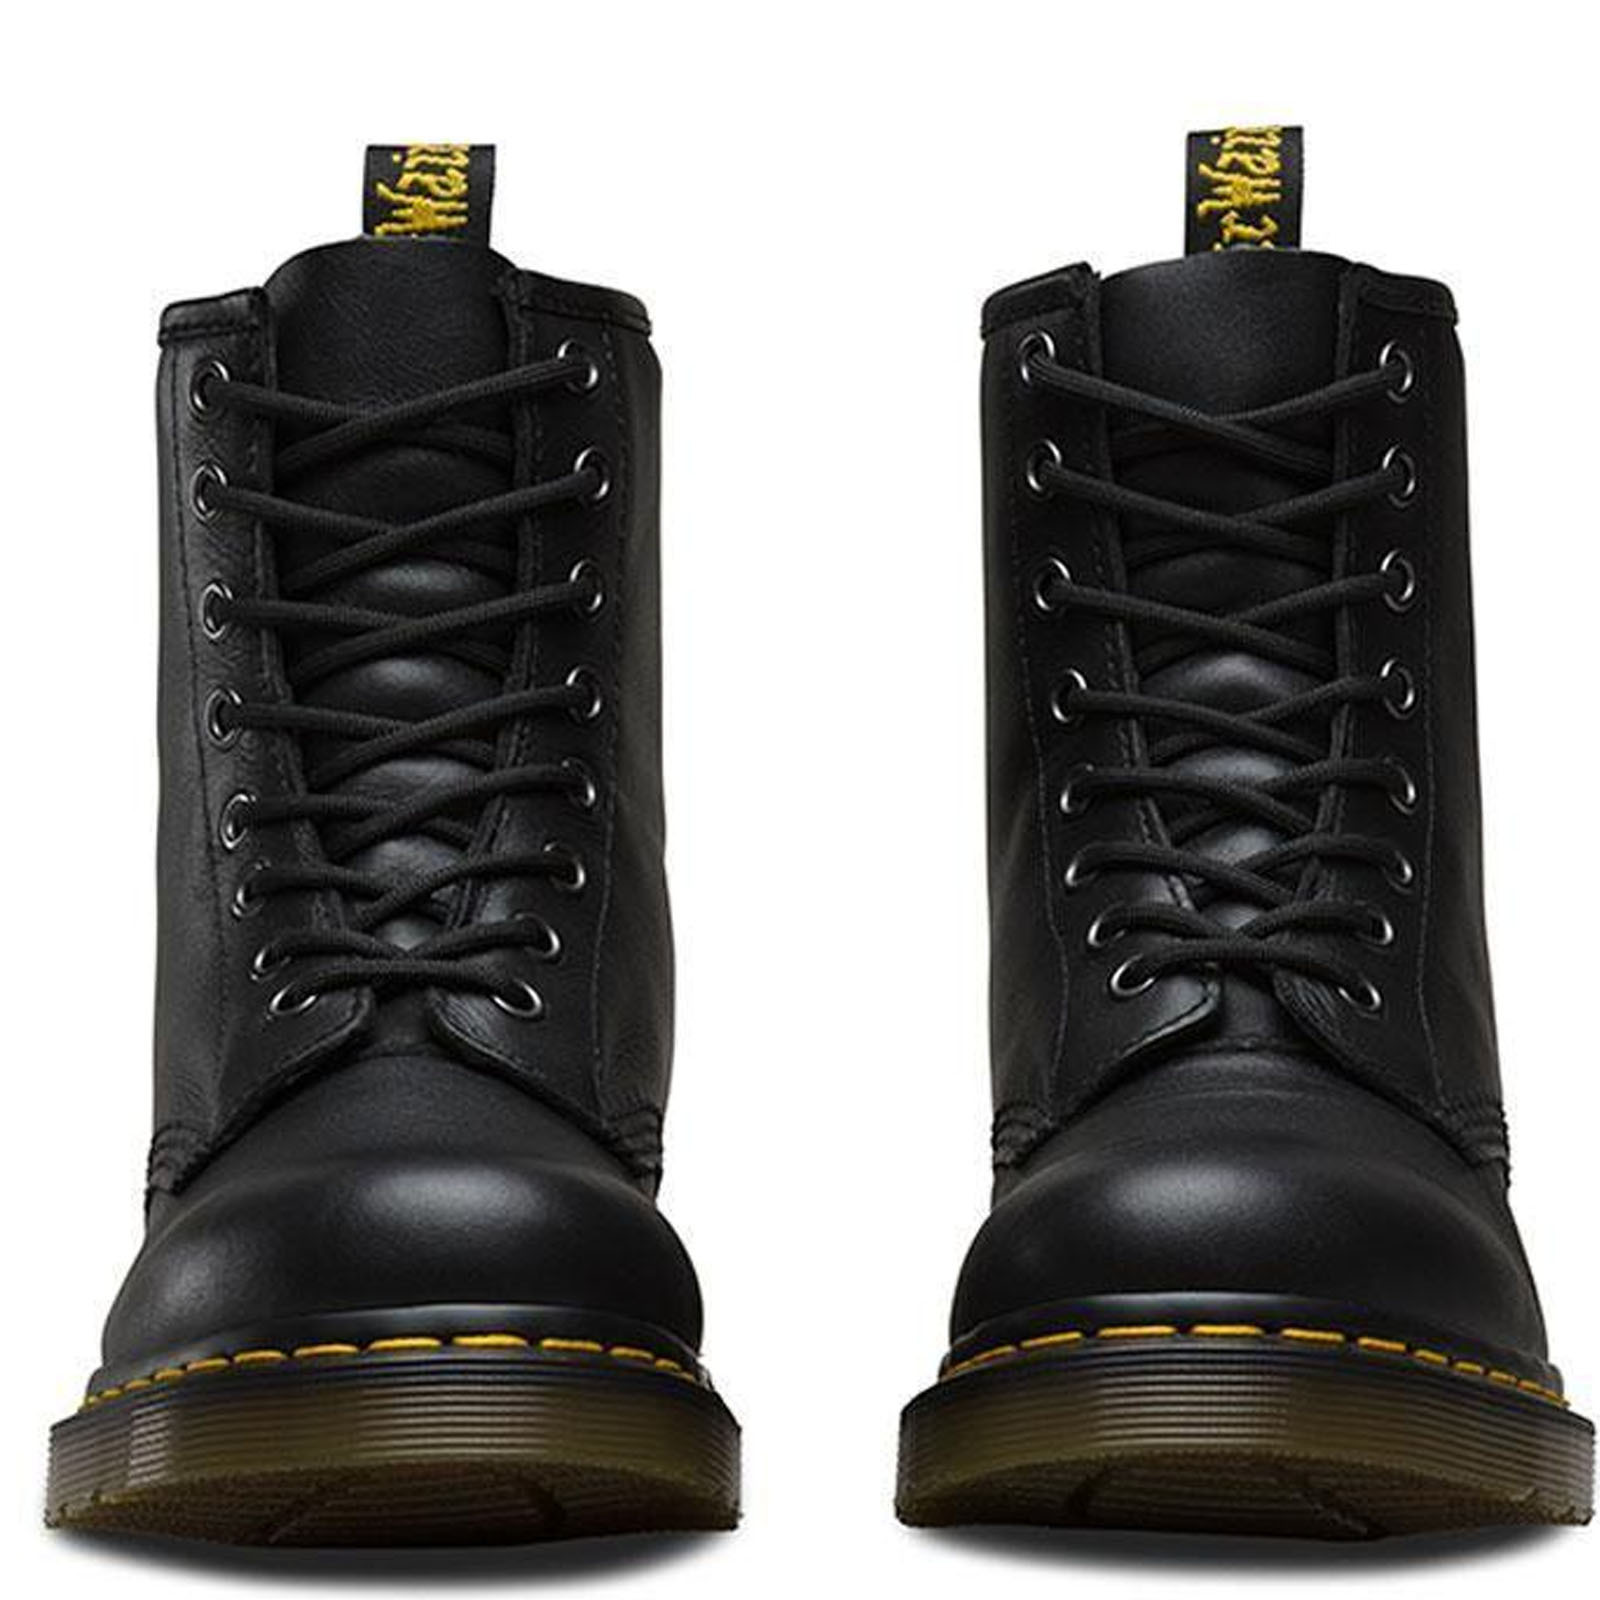 Dr-Martens-Unisex-1460-8-Lace-Up-Leather-Boots-Shoes-Doc-Martins-Soft-Nappa thumbnail 14